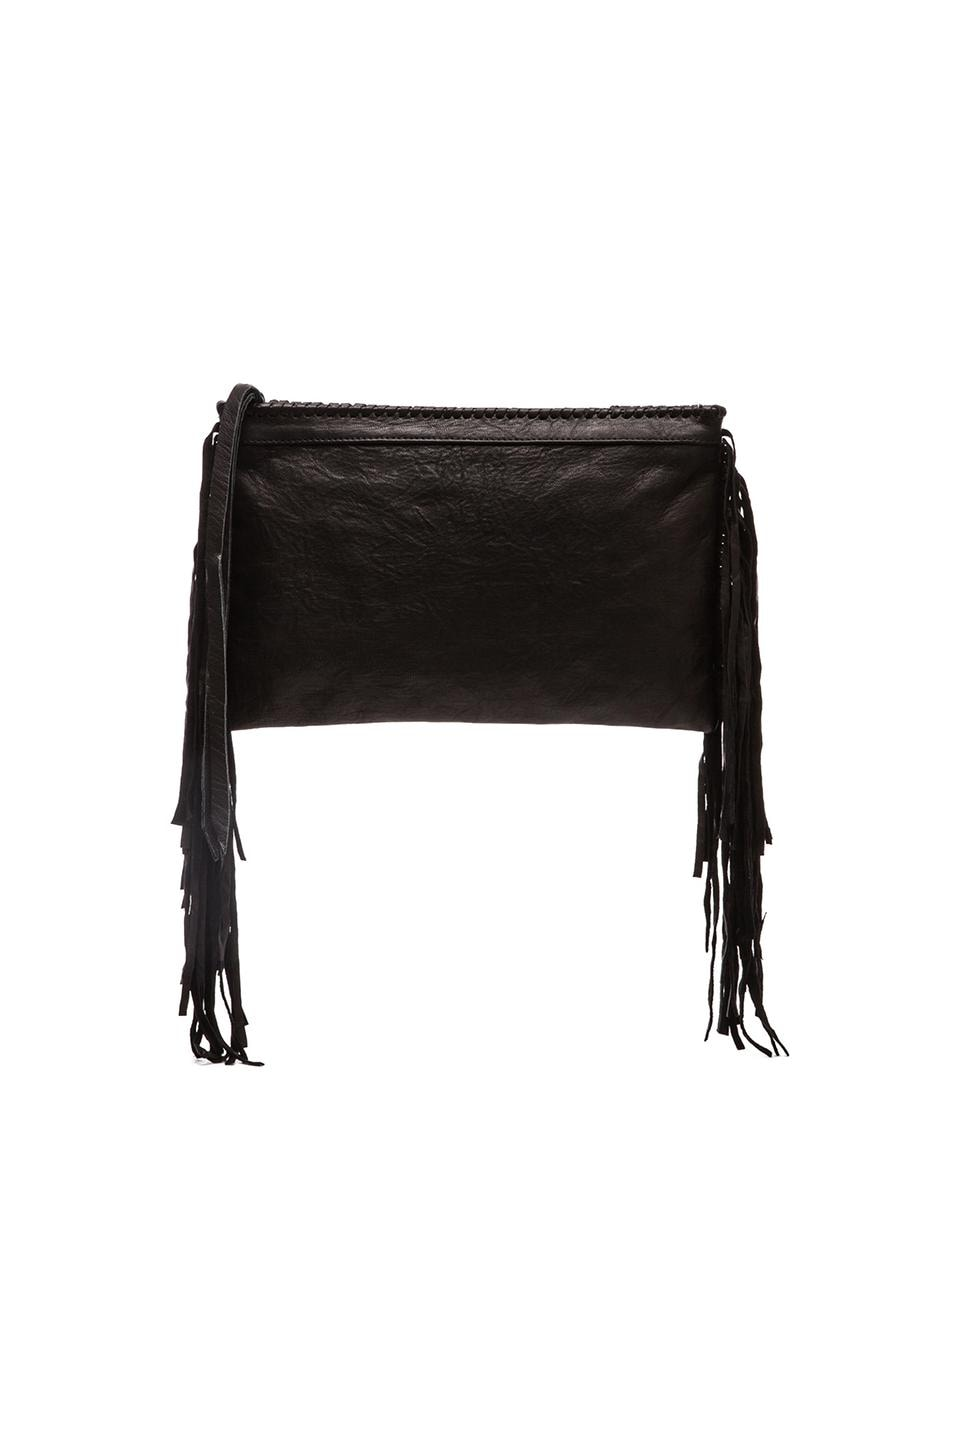 Cleobella Joplin Clutch in Black